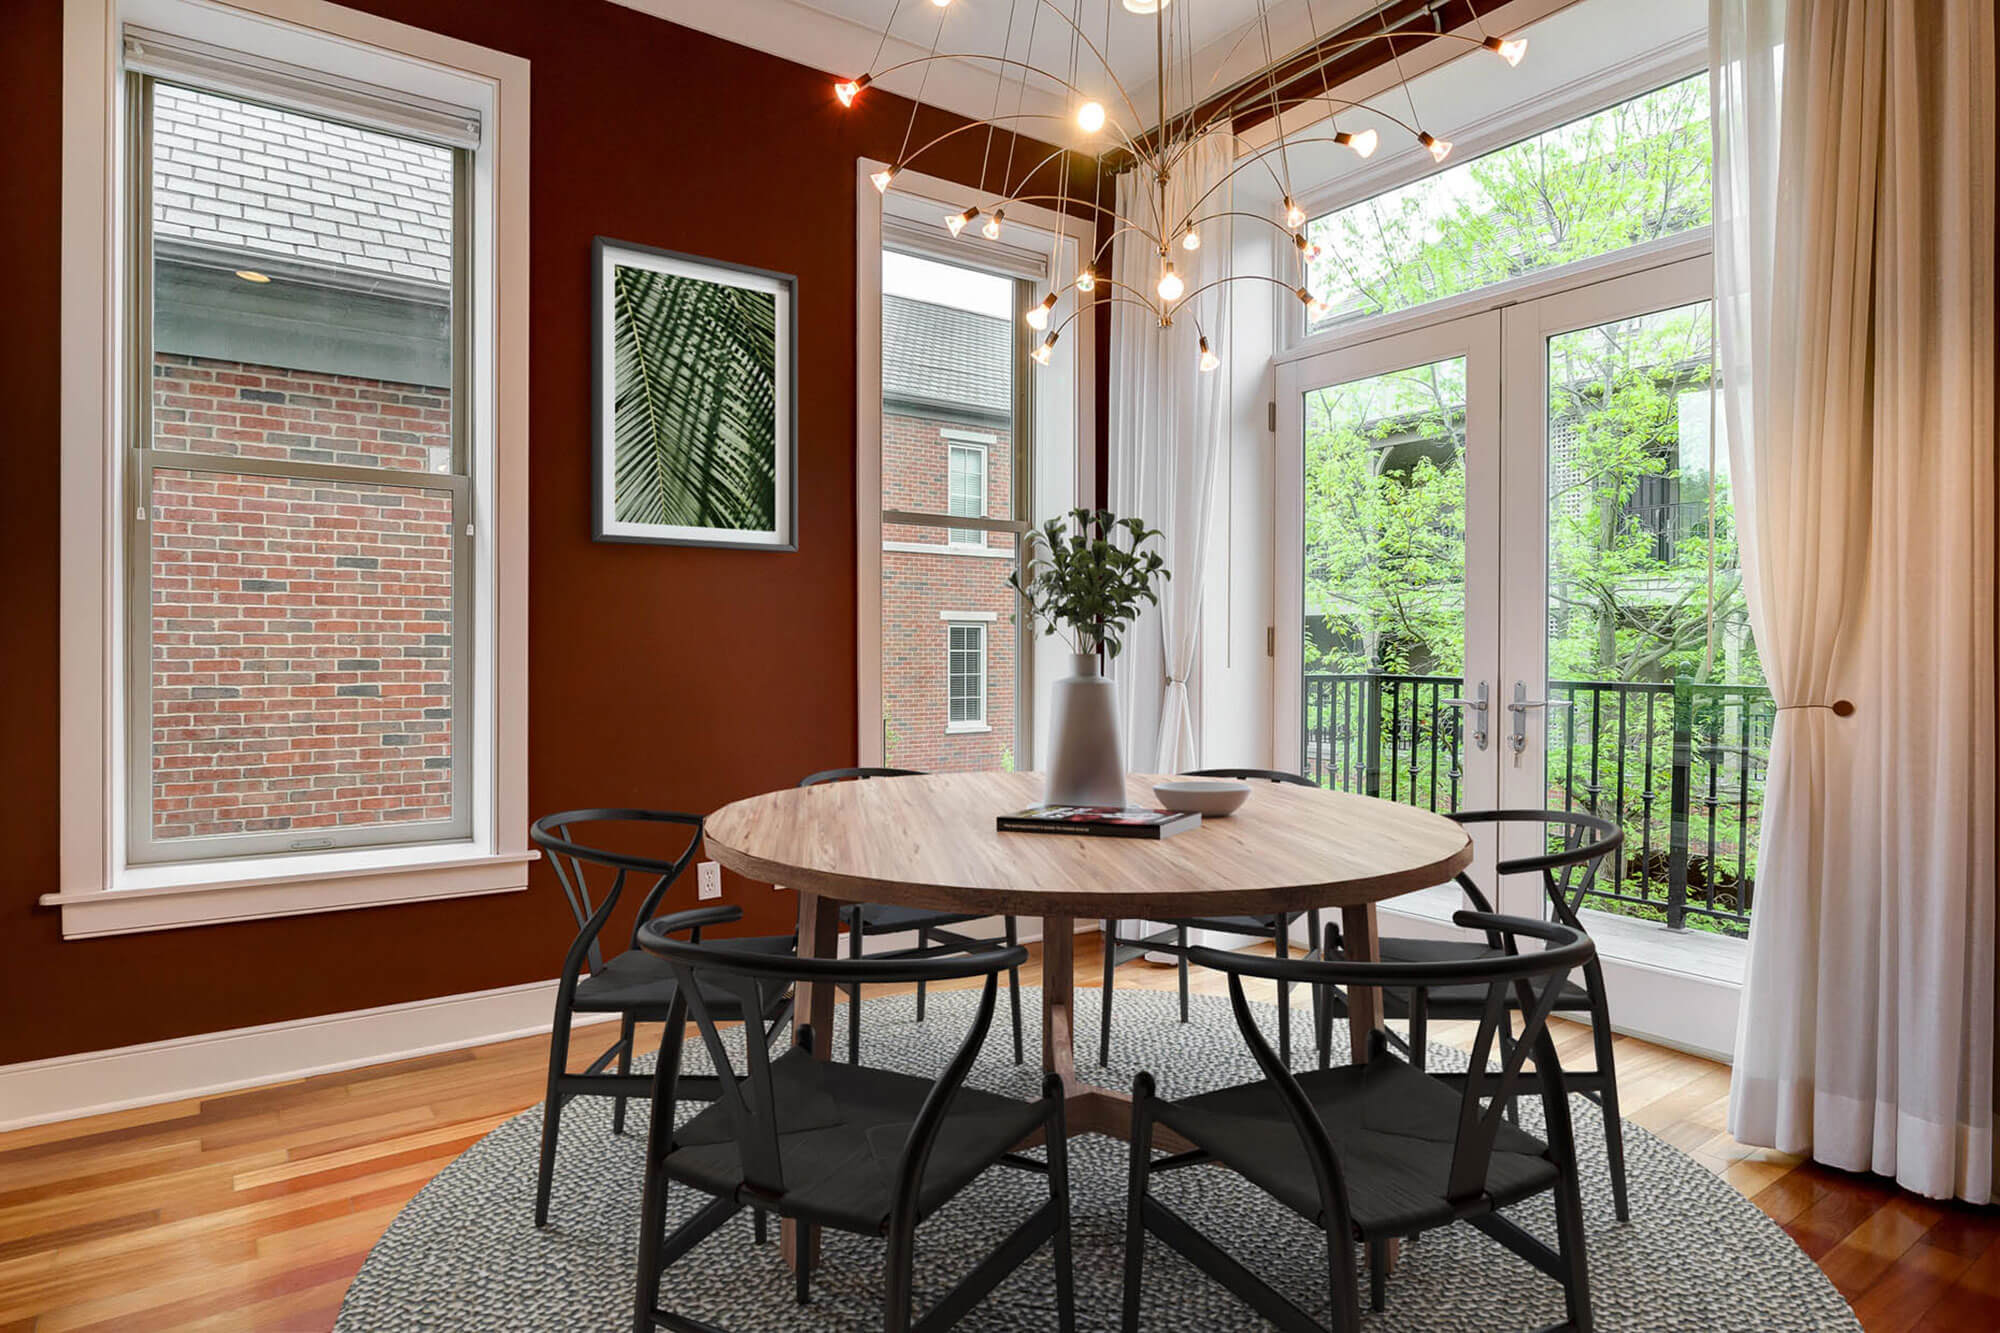 residential staged dining area with large windows